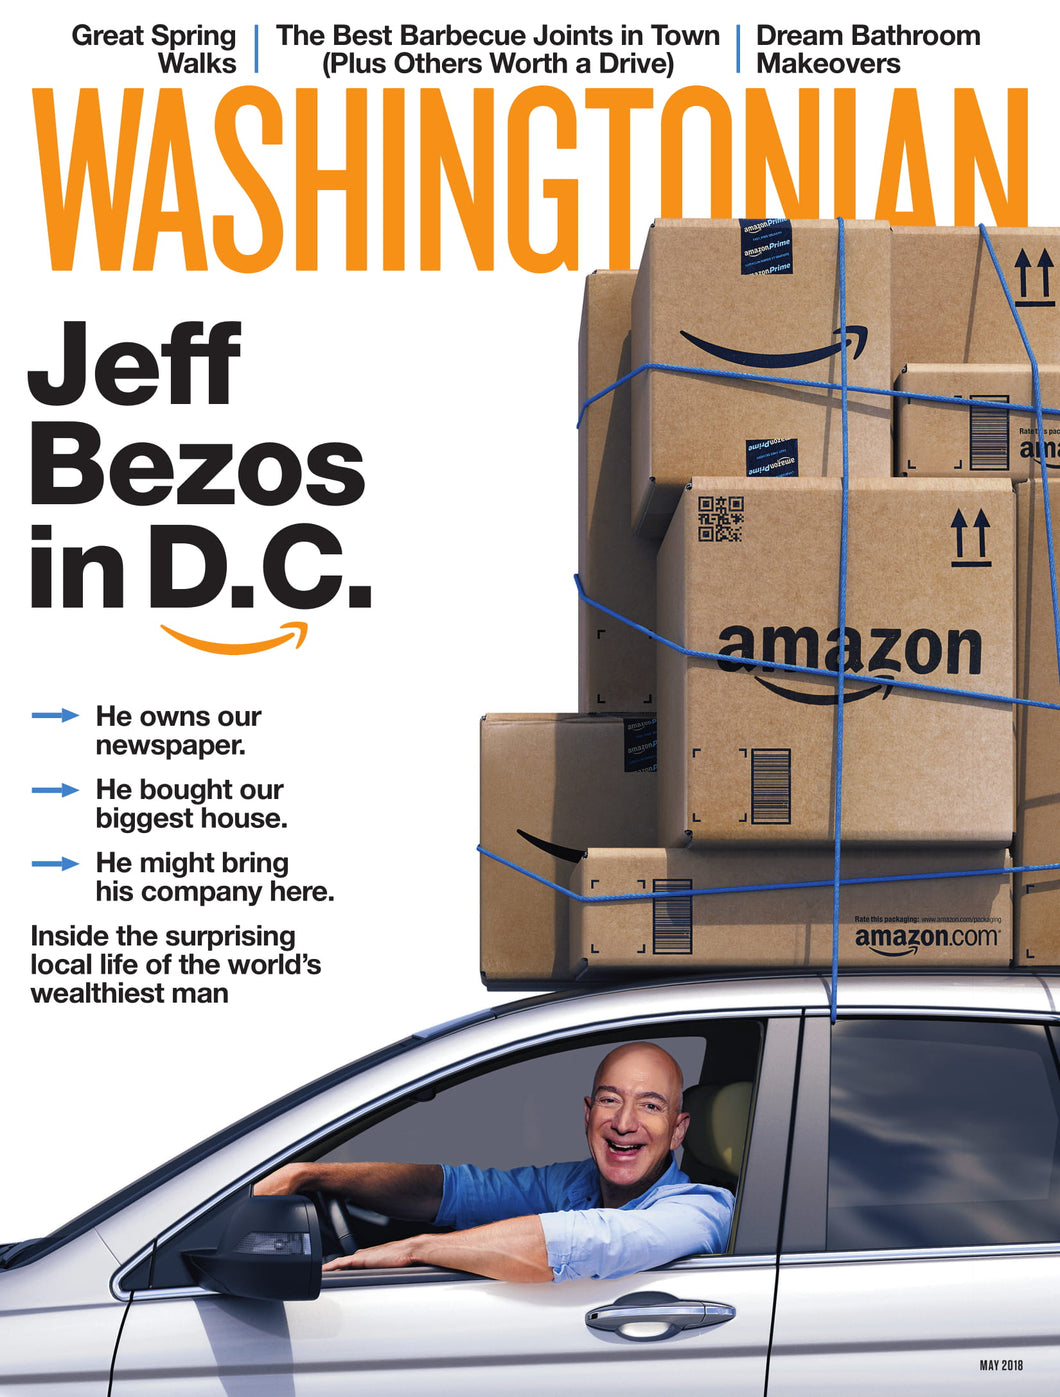 Washingtonian: May 2018 - Jeff Bezos in D.C.